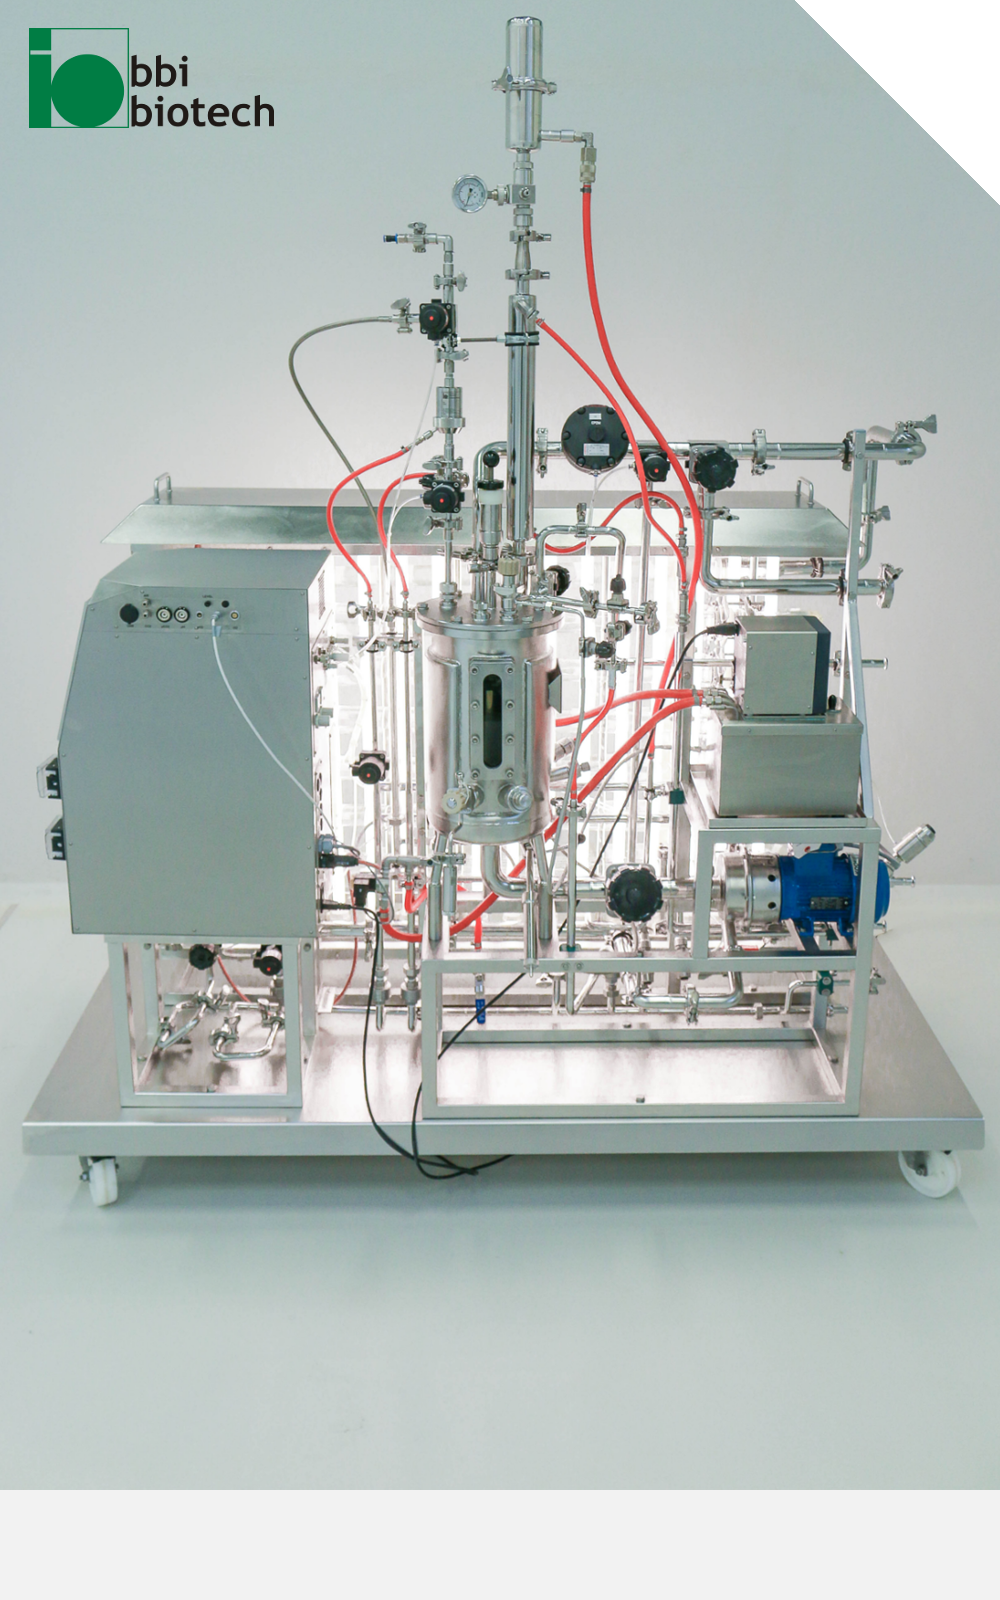 Sterile Photobioreactor Type for Microalgae Production in Product Development and Research